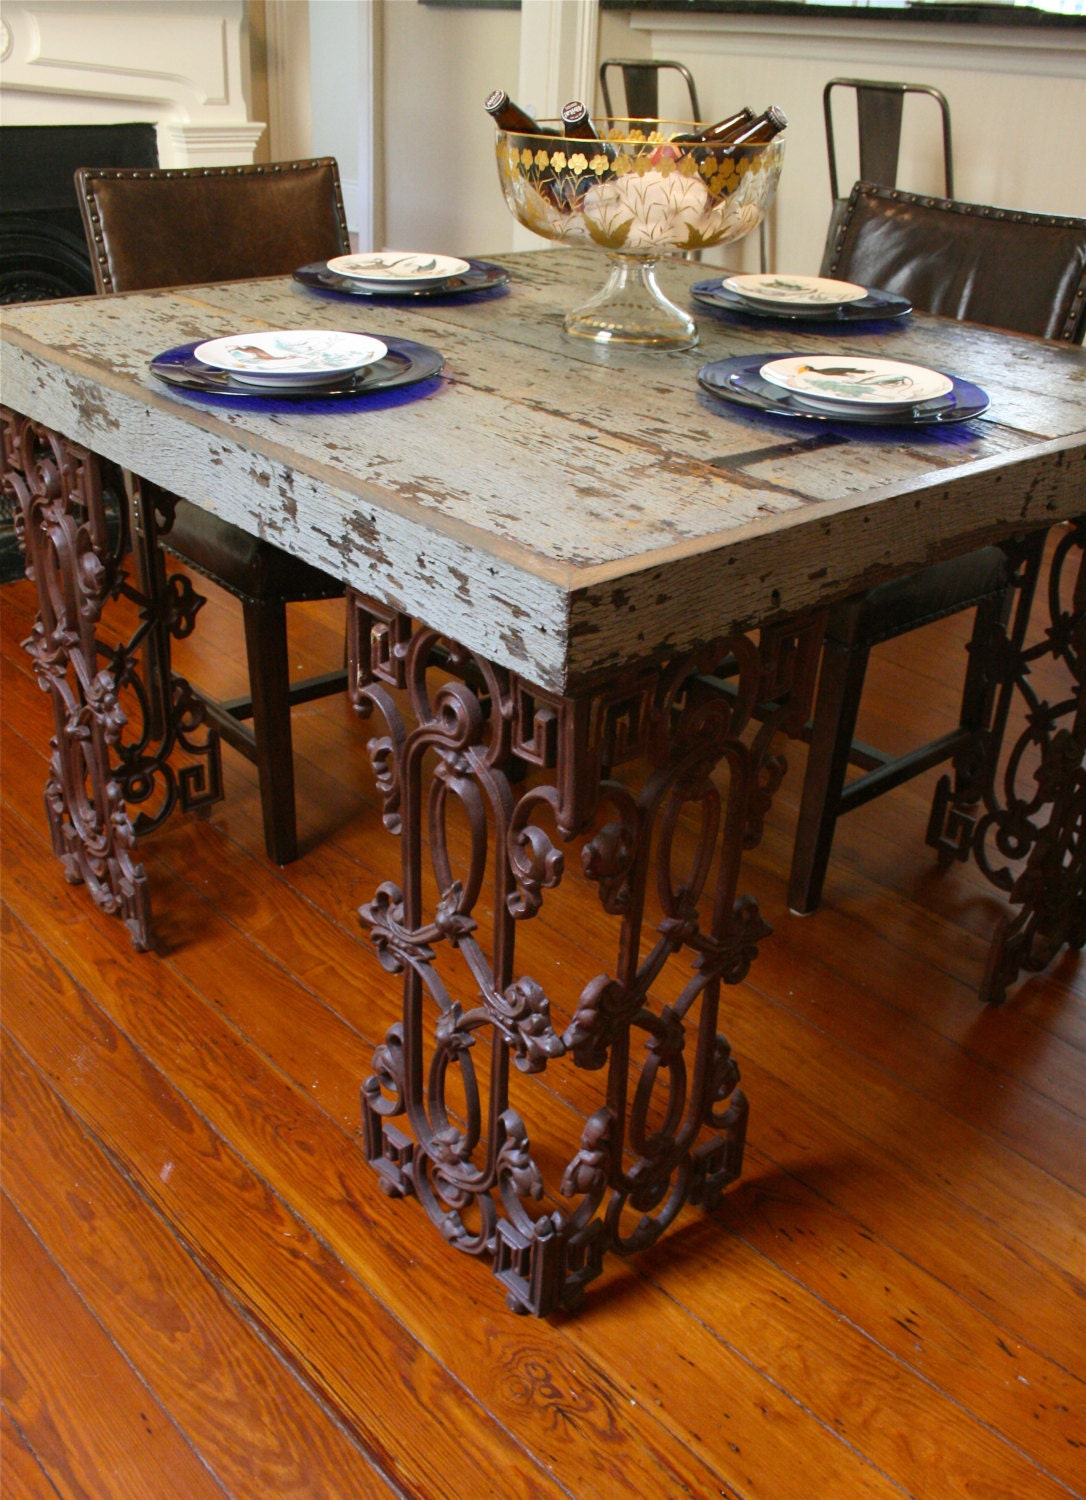 Take A Bite Out Of 24 Modern Dining Rooms: New Orleans Dining Room Table Made From Reclaimed Wood And